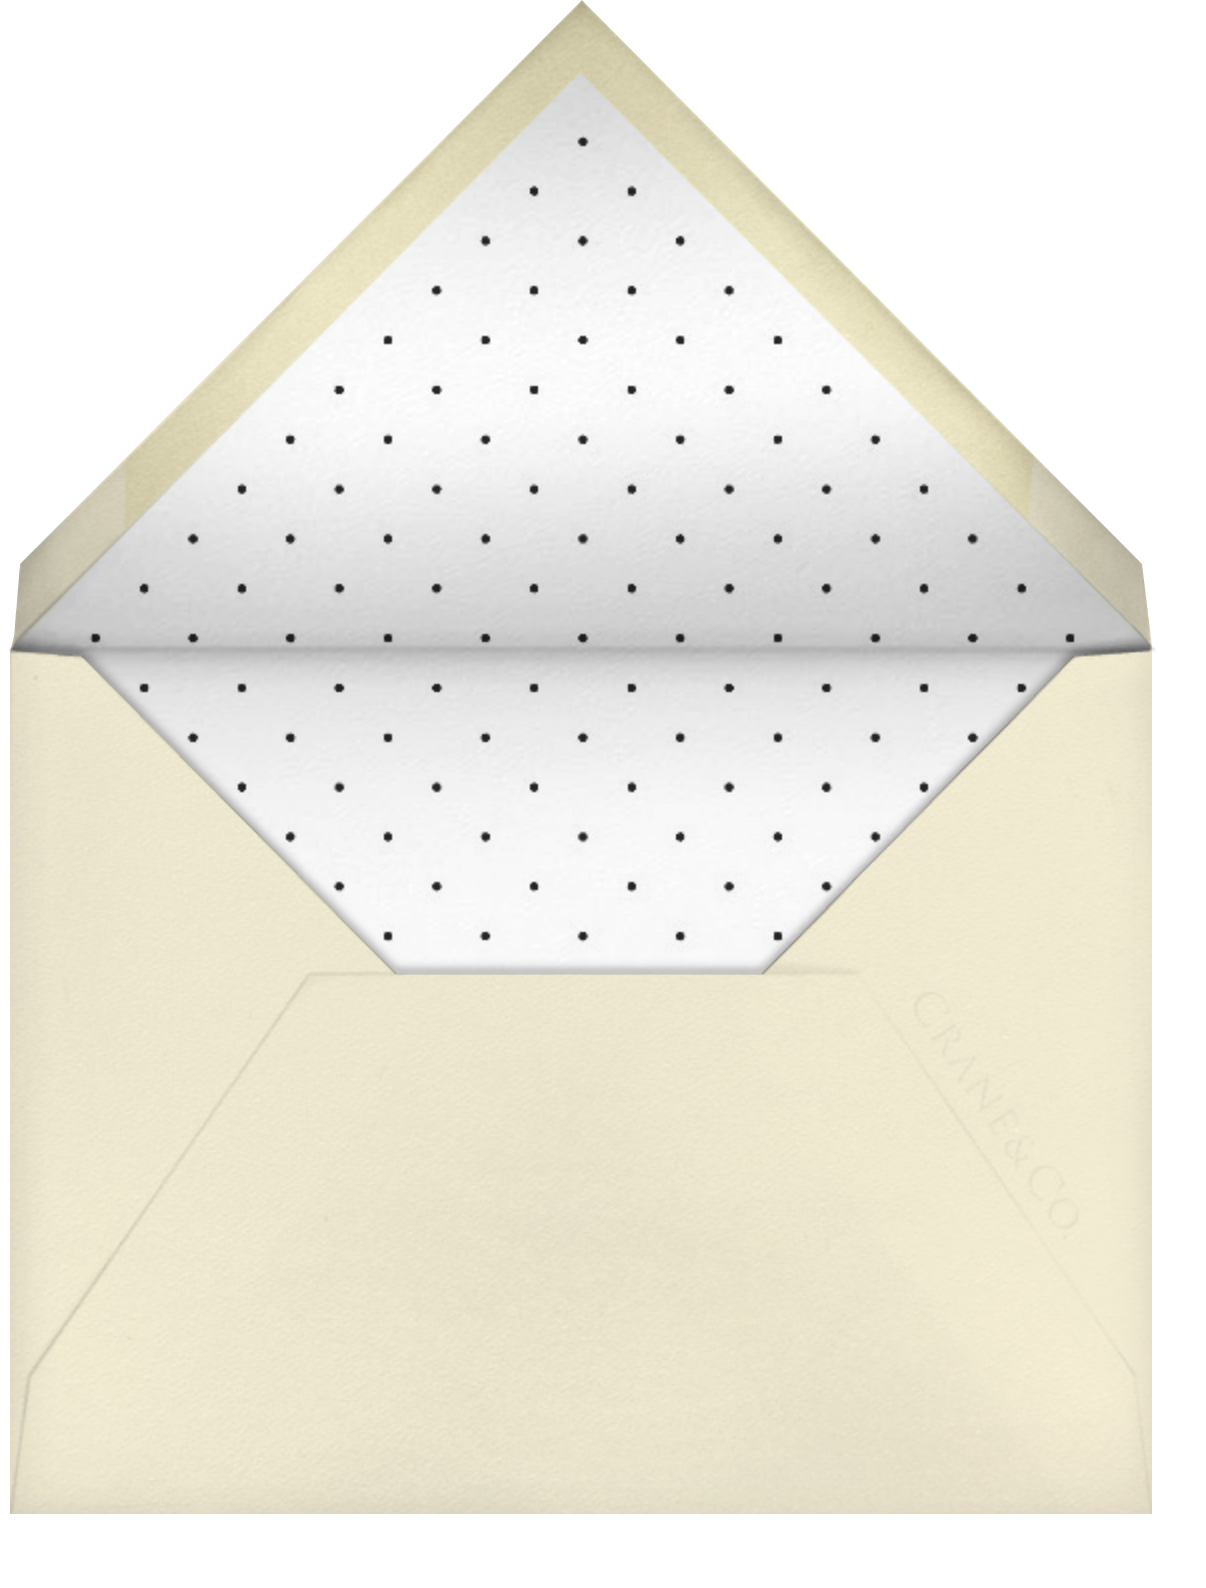 Tandem I (Invitation) - kate spade new york - Engagement party - envelope back